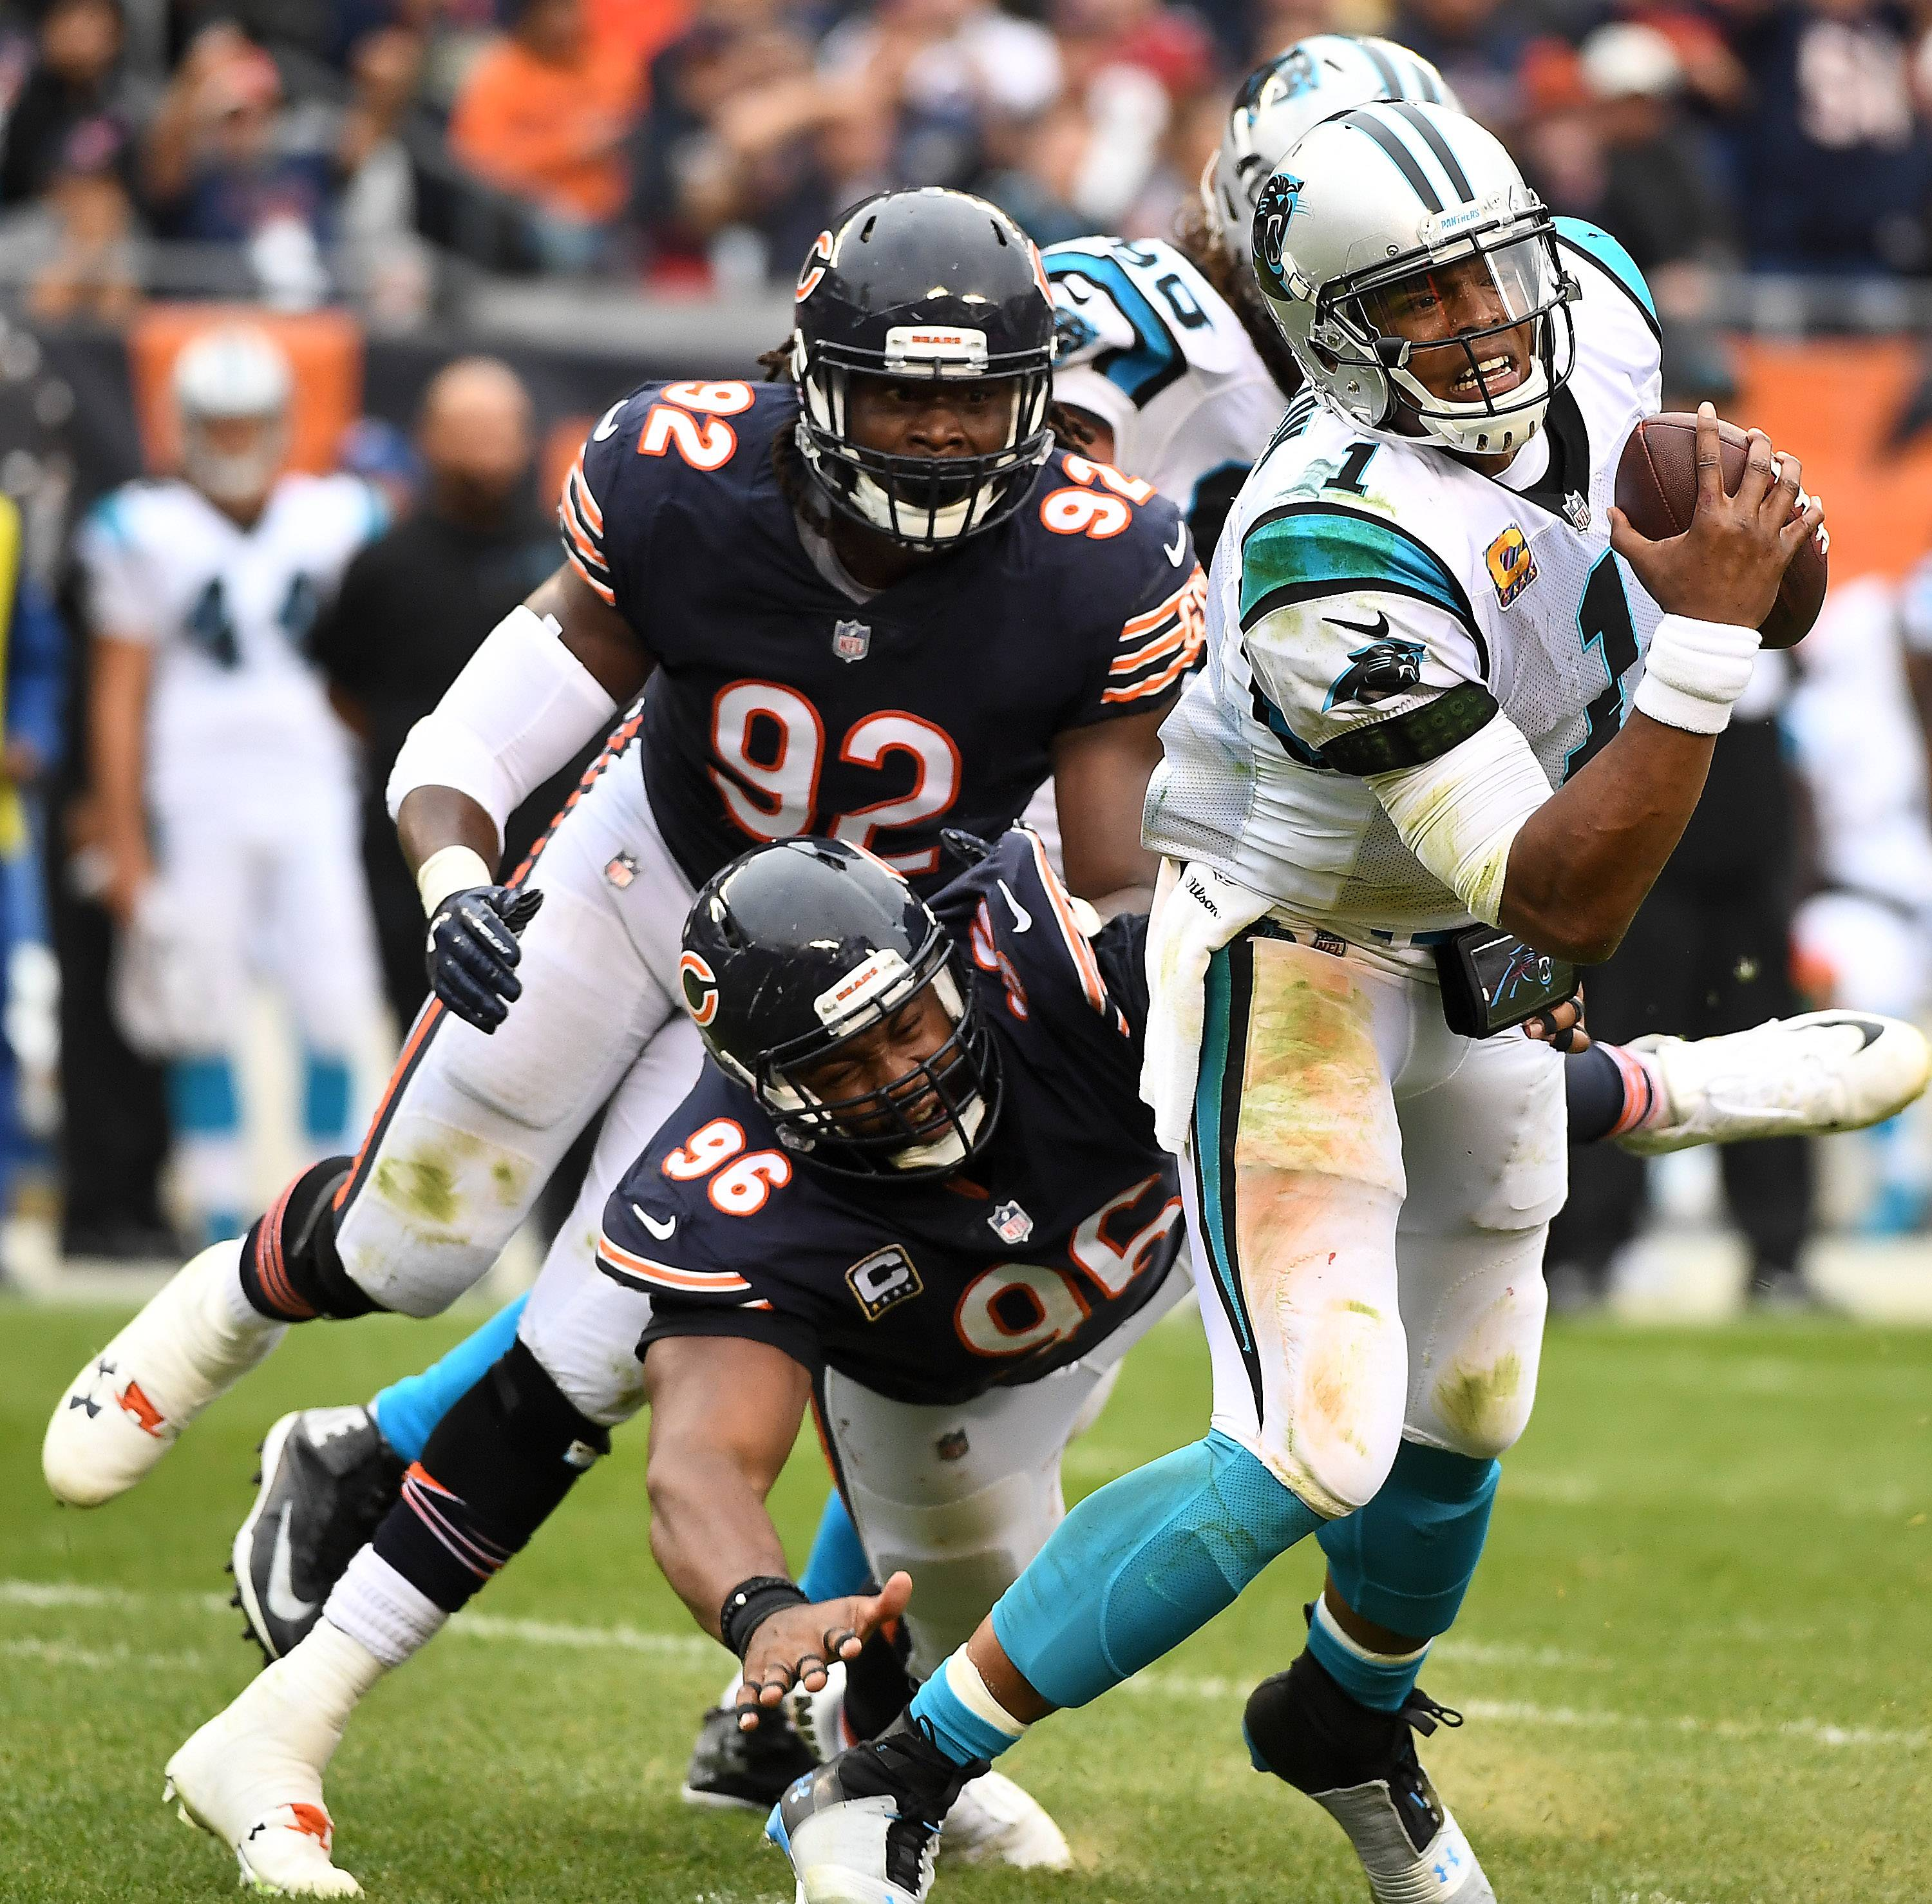 Rick West/rwest@dailyherald.comChicago Bears defensive end Akiem Hicks (96) and outside linebacker Pernell McPhee (92) close in on Carolina Panthers quarterback Cam Newton (1) during Sunday's game at Soldier Field in Chicago.